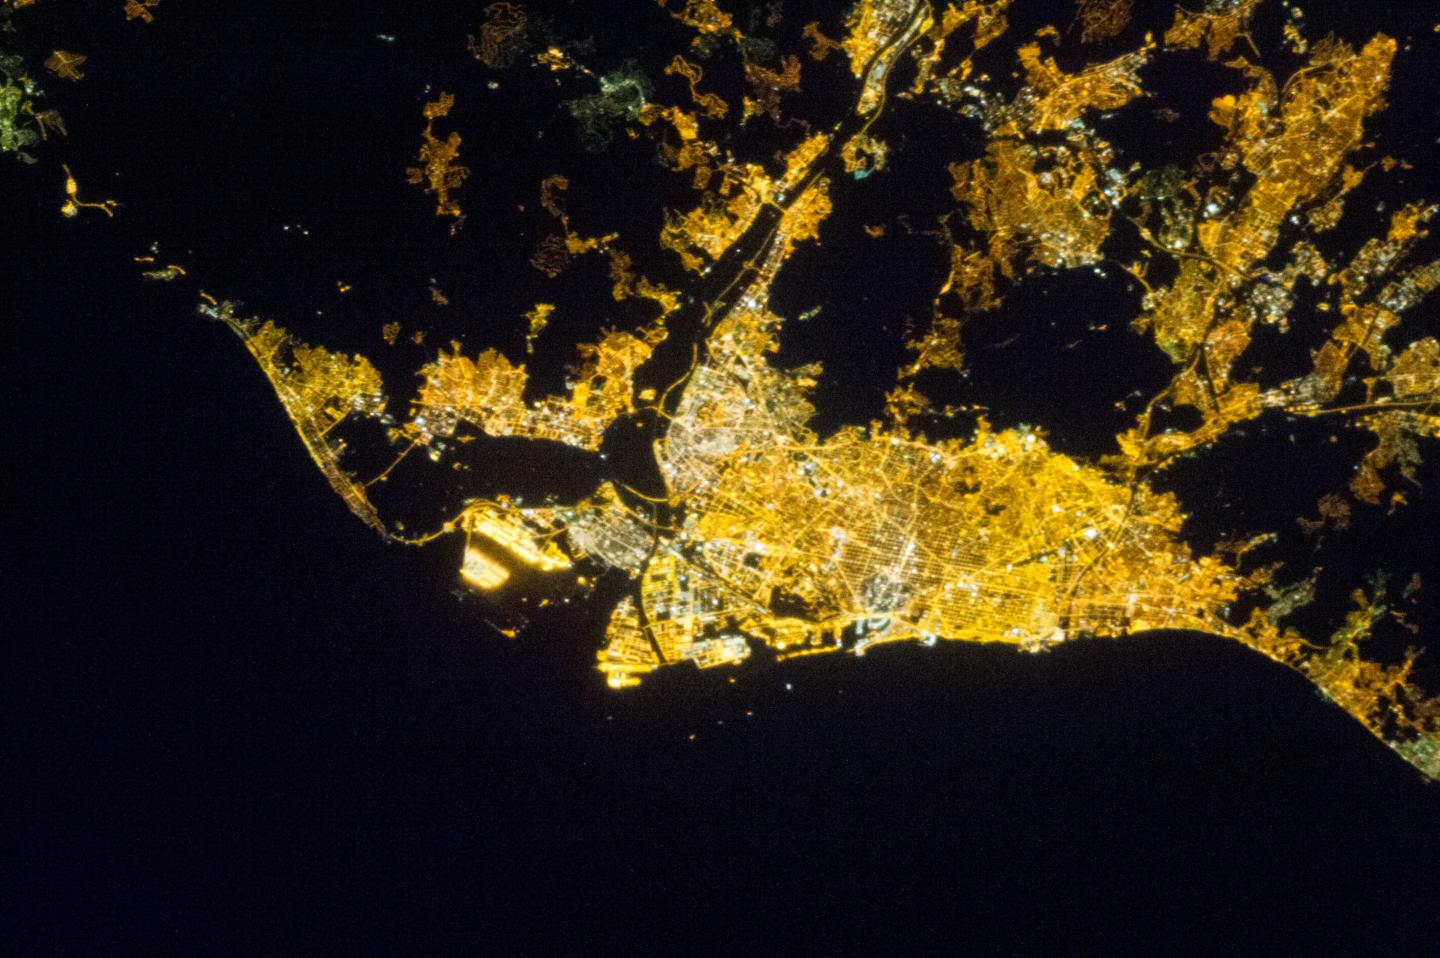 Night Image from Barcelona from Space